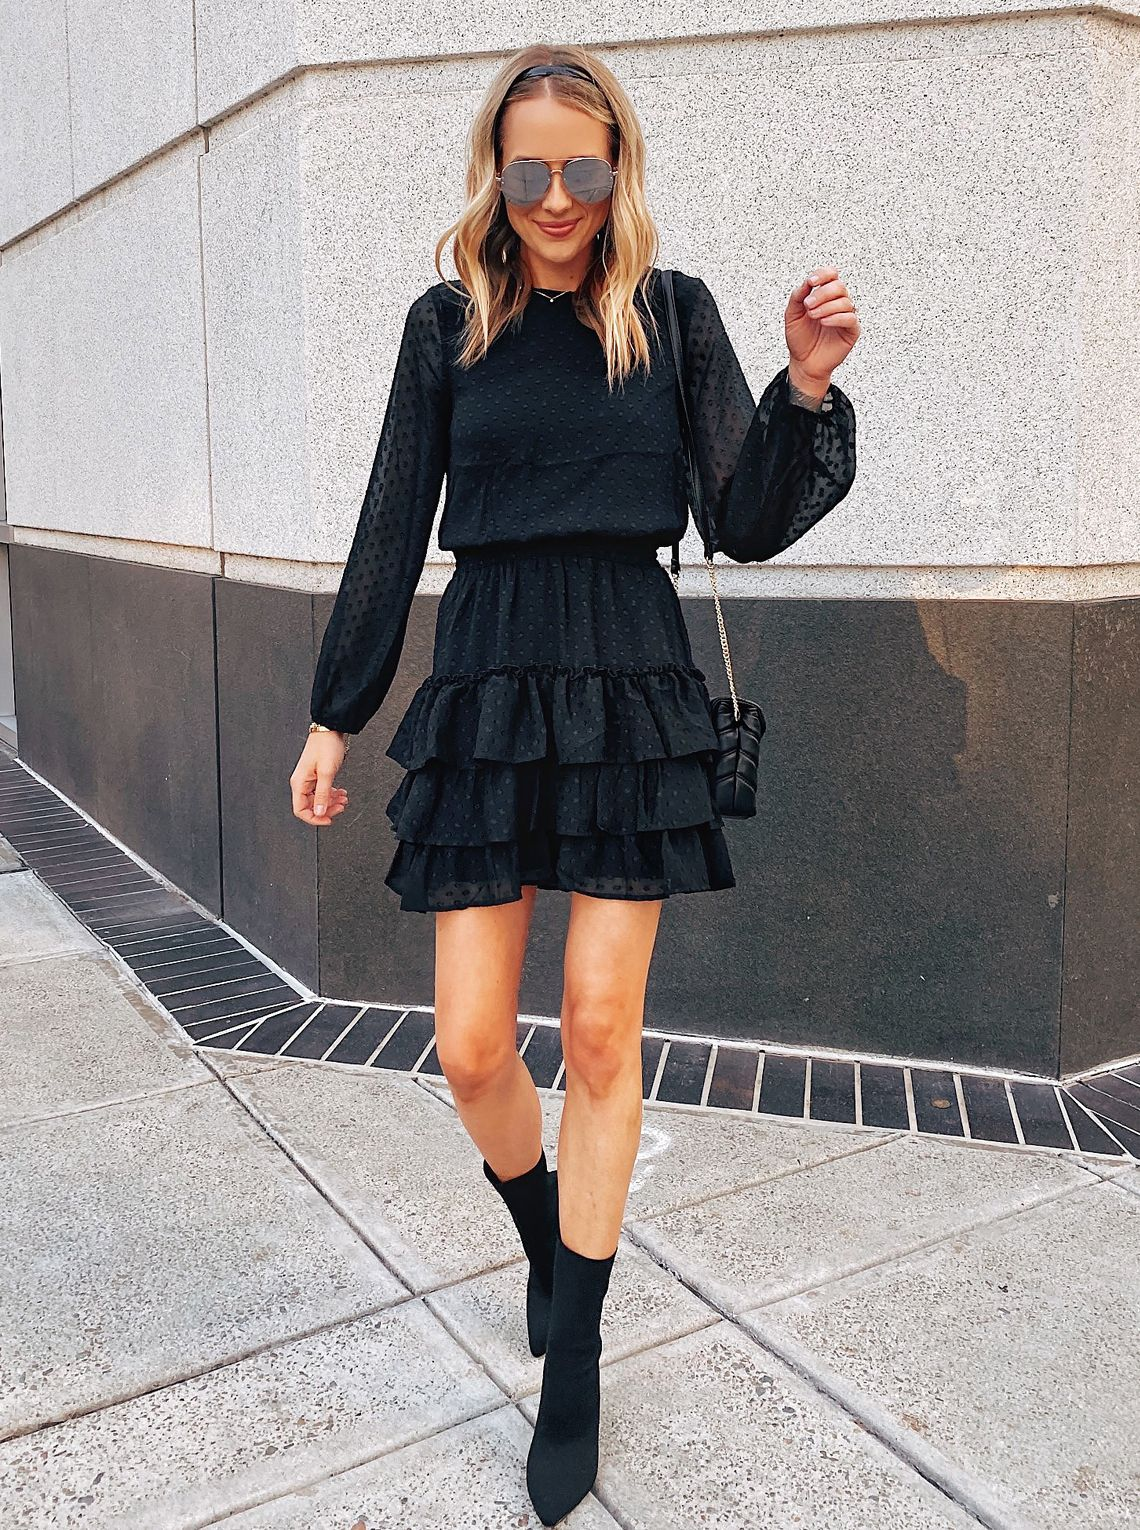 This Is The Perfect Little Black Dress For The Holidays The Sheer Sleeves And The Tiered S Black Dresses Casual Little Black Dress Perfect Little Black Dress [ 1530 x 1140 Pixel ]